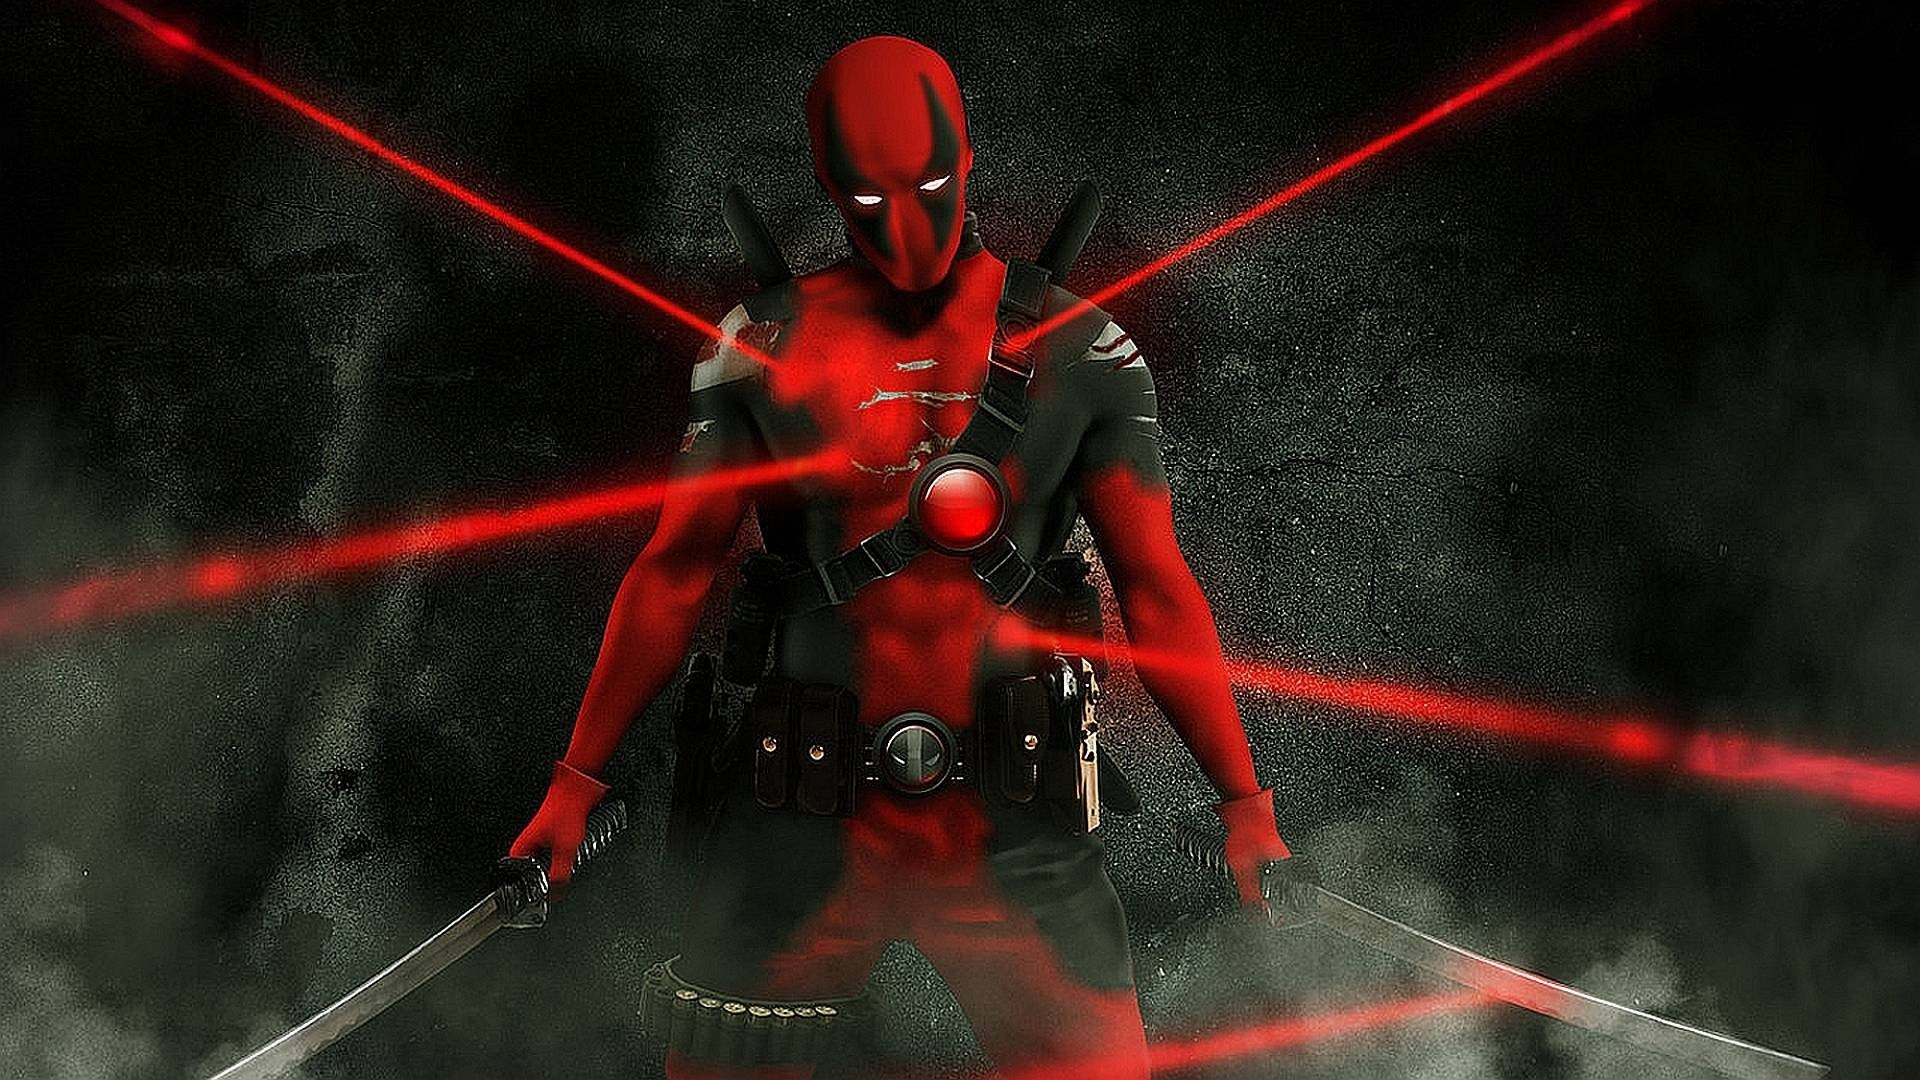 2560x1600 Movies Deadpool Wallpapers HD Desktop And Mobile Backgrounds